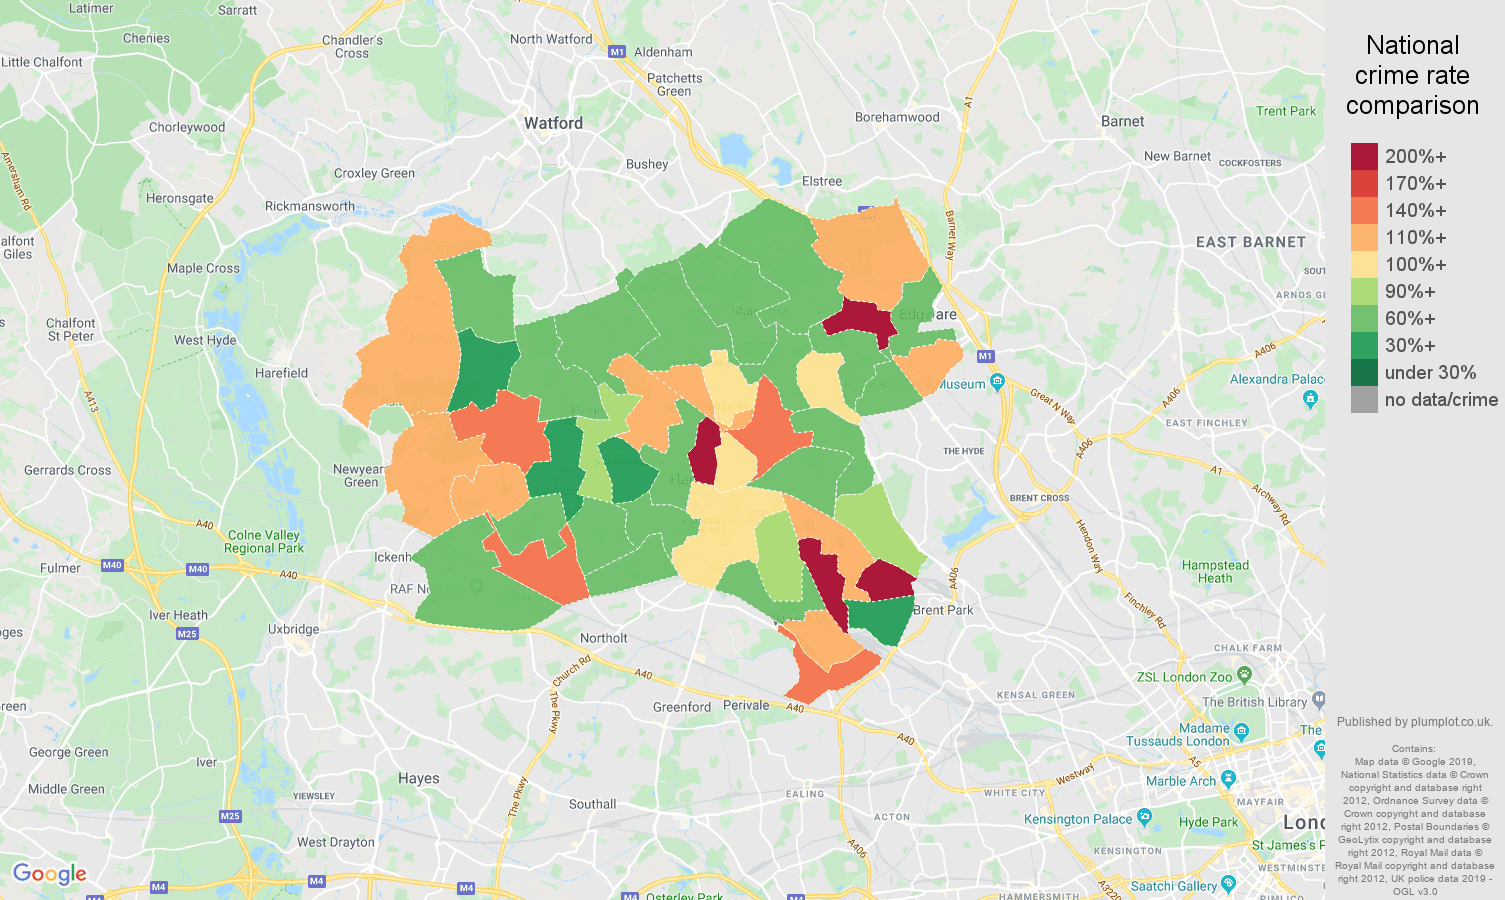 Harrow other theft crime rate comparison map